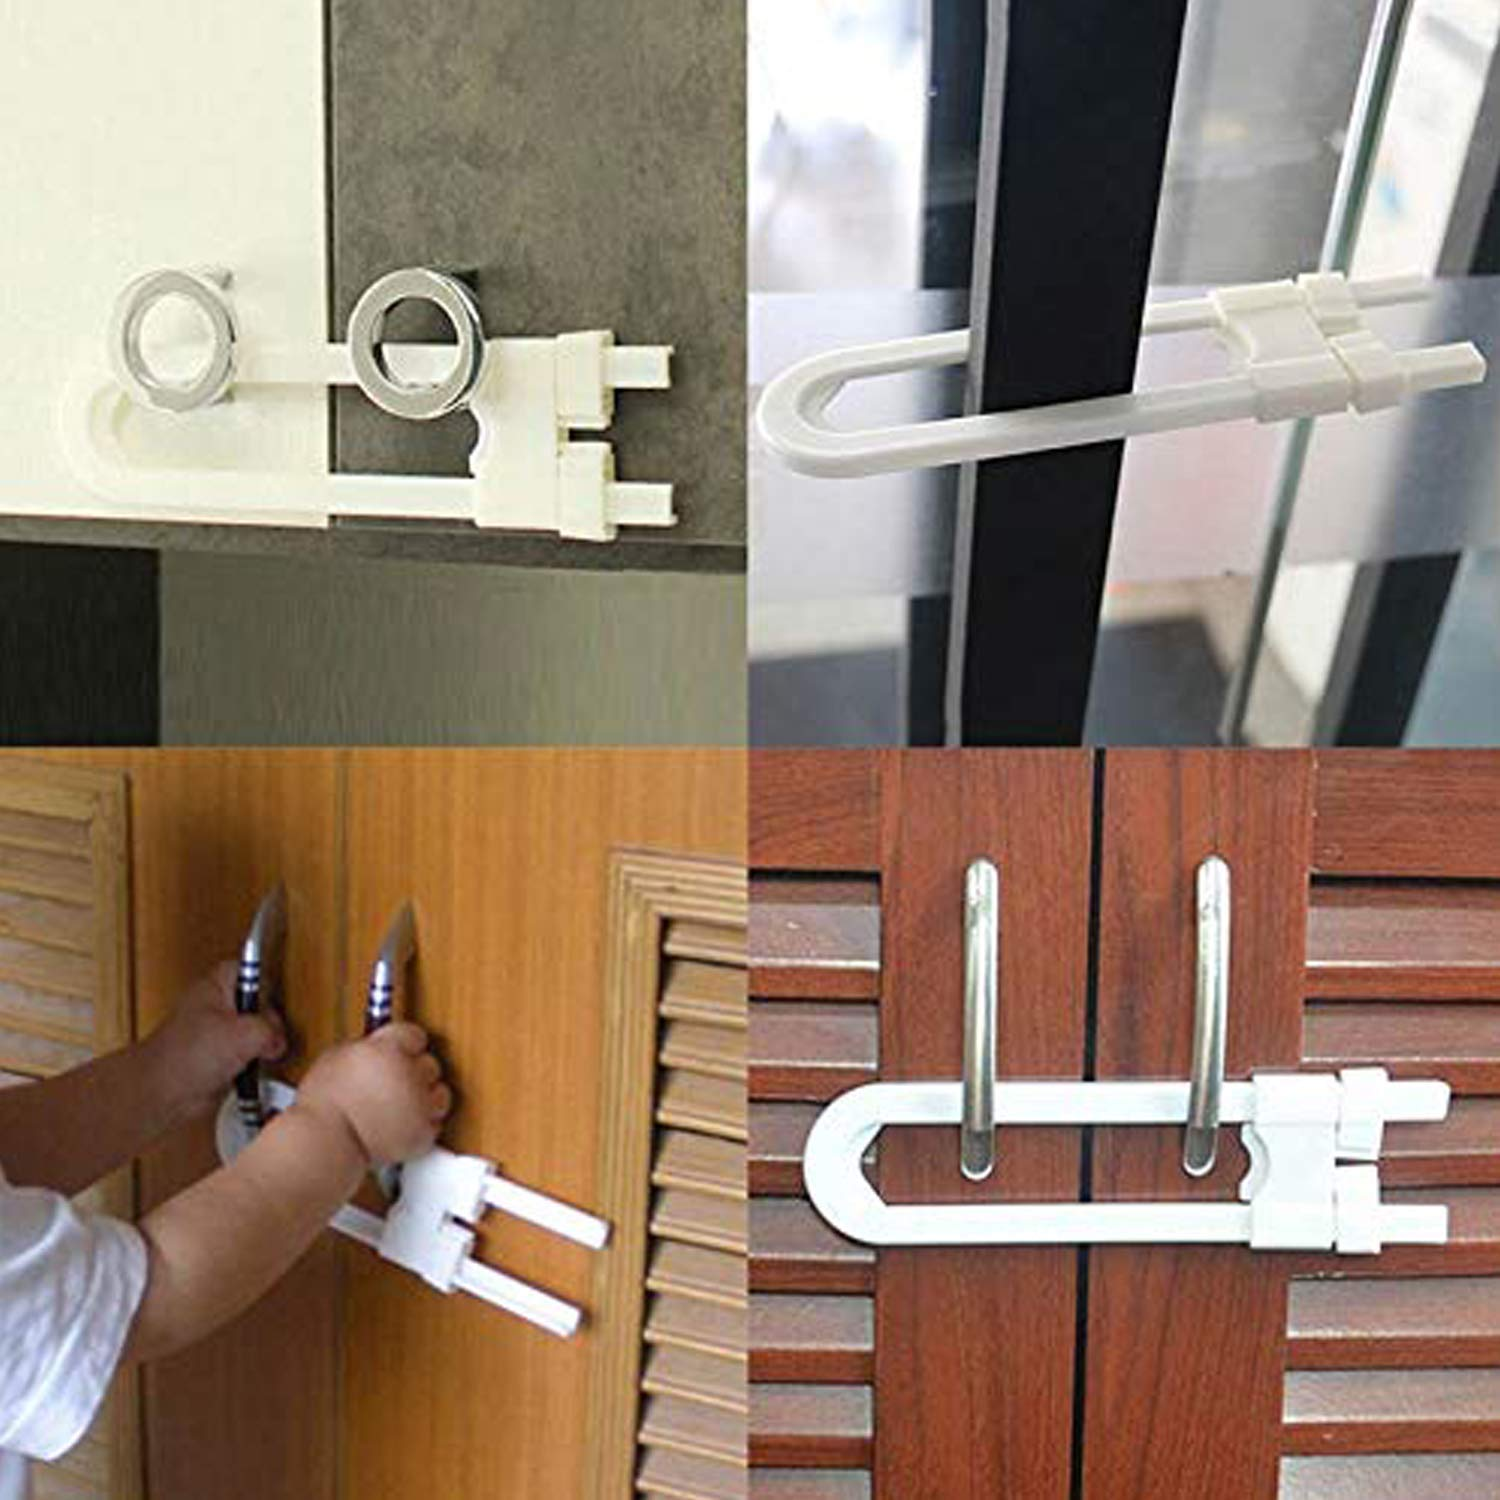 10-Pack Sliding Lock Latches Child Proof Baby Safety Design for Kitchen Cabinet Door Handle